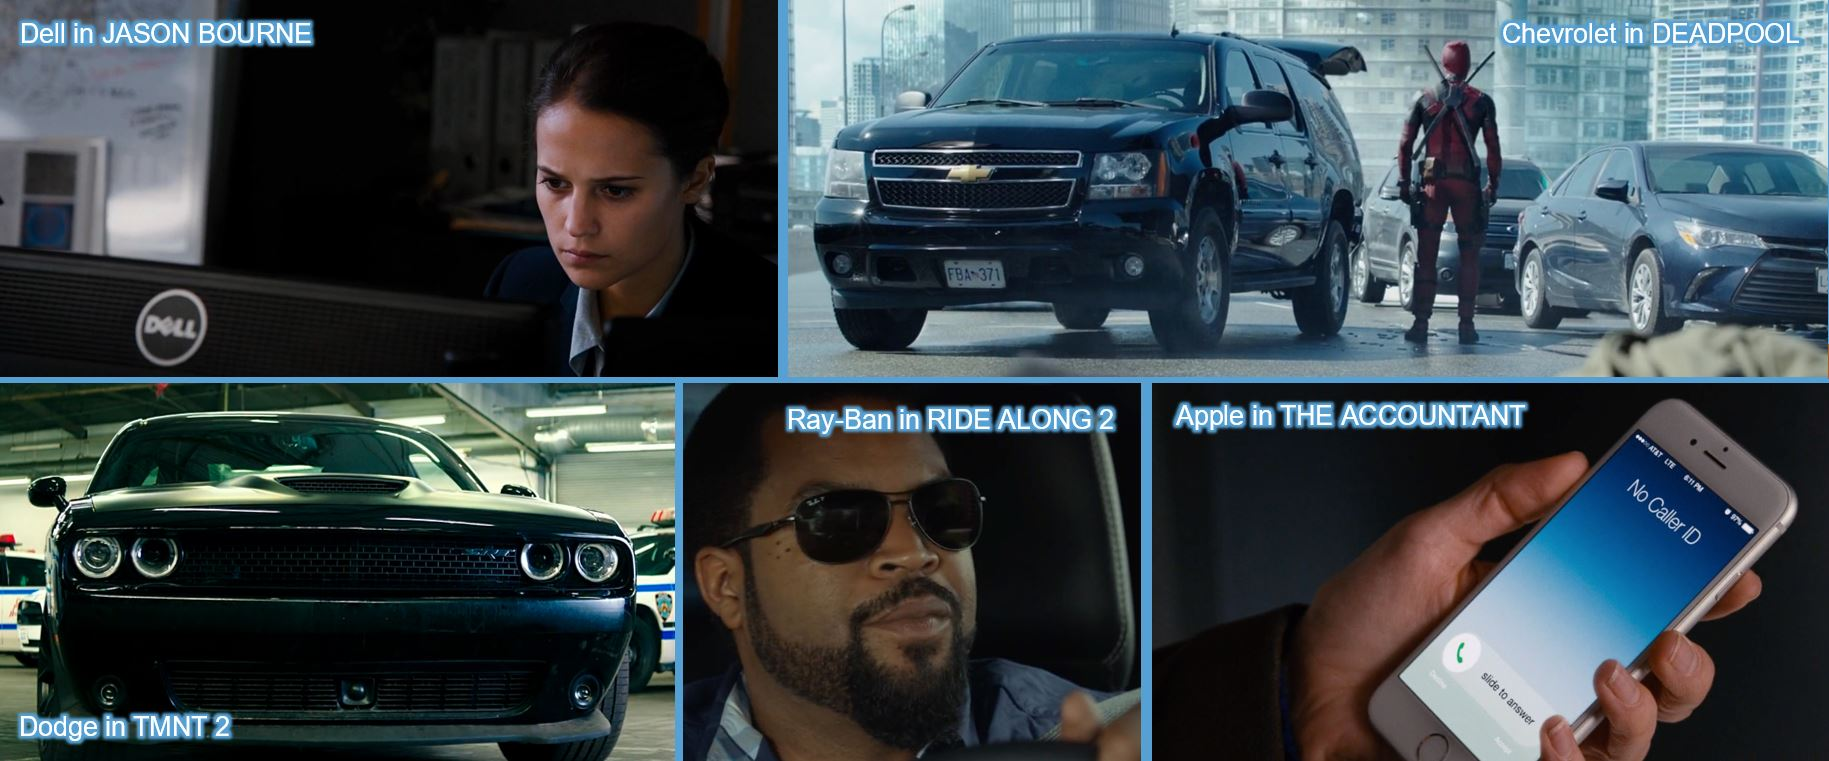 Dell in JASON BOURNE Chevrolet in DEADPOOL Dodge in TMNT 2 teenage Mutant Ninja Turtles: Out of the Shadows Ray-Ban in RIDE ALONG Apple in THE ACCOUNTANT product placement concave brand tracking